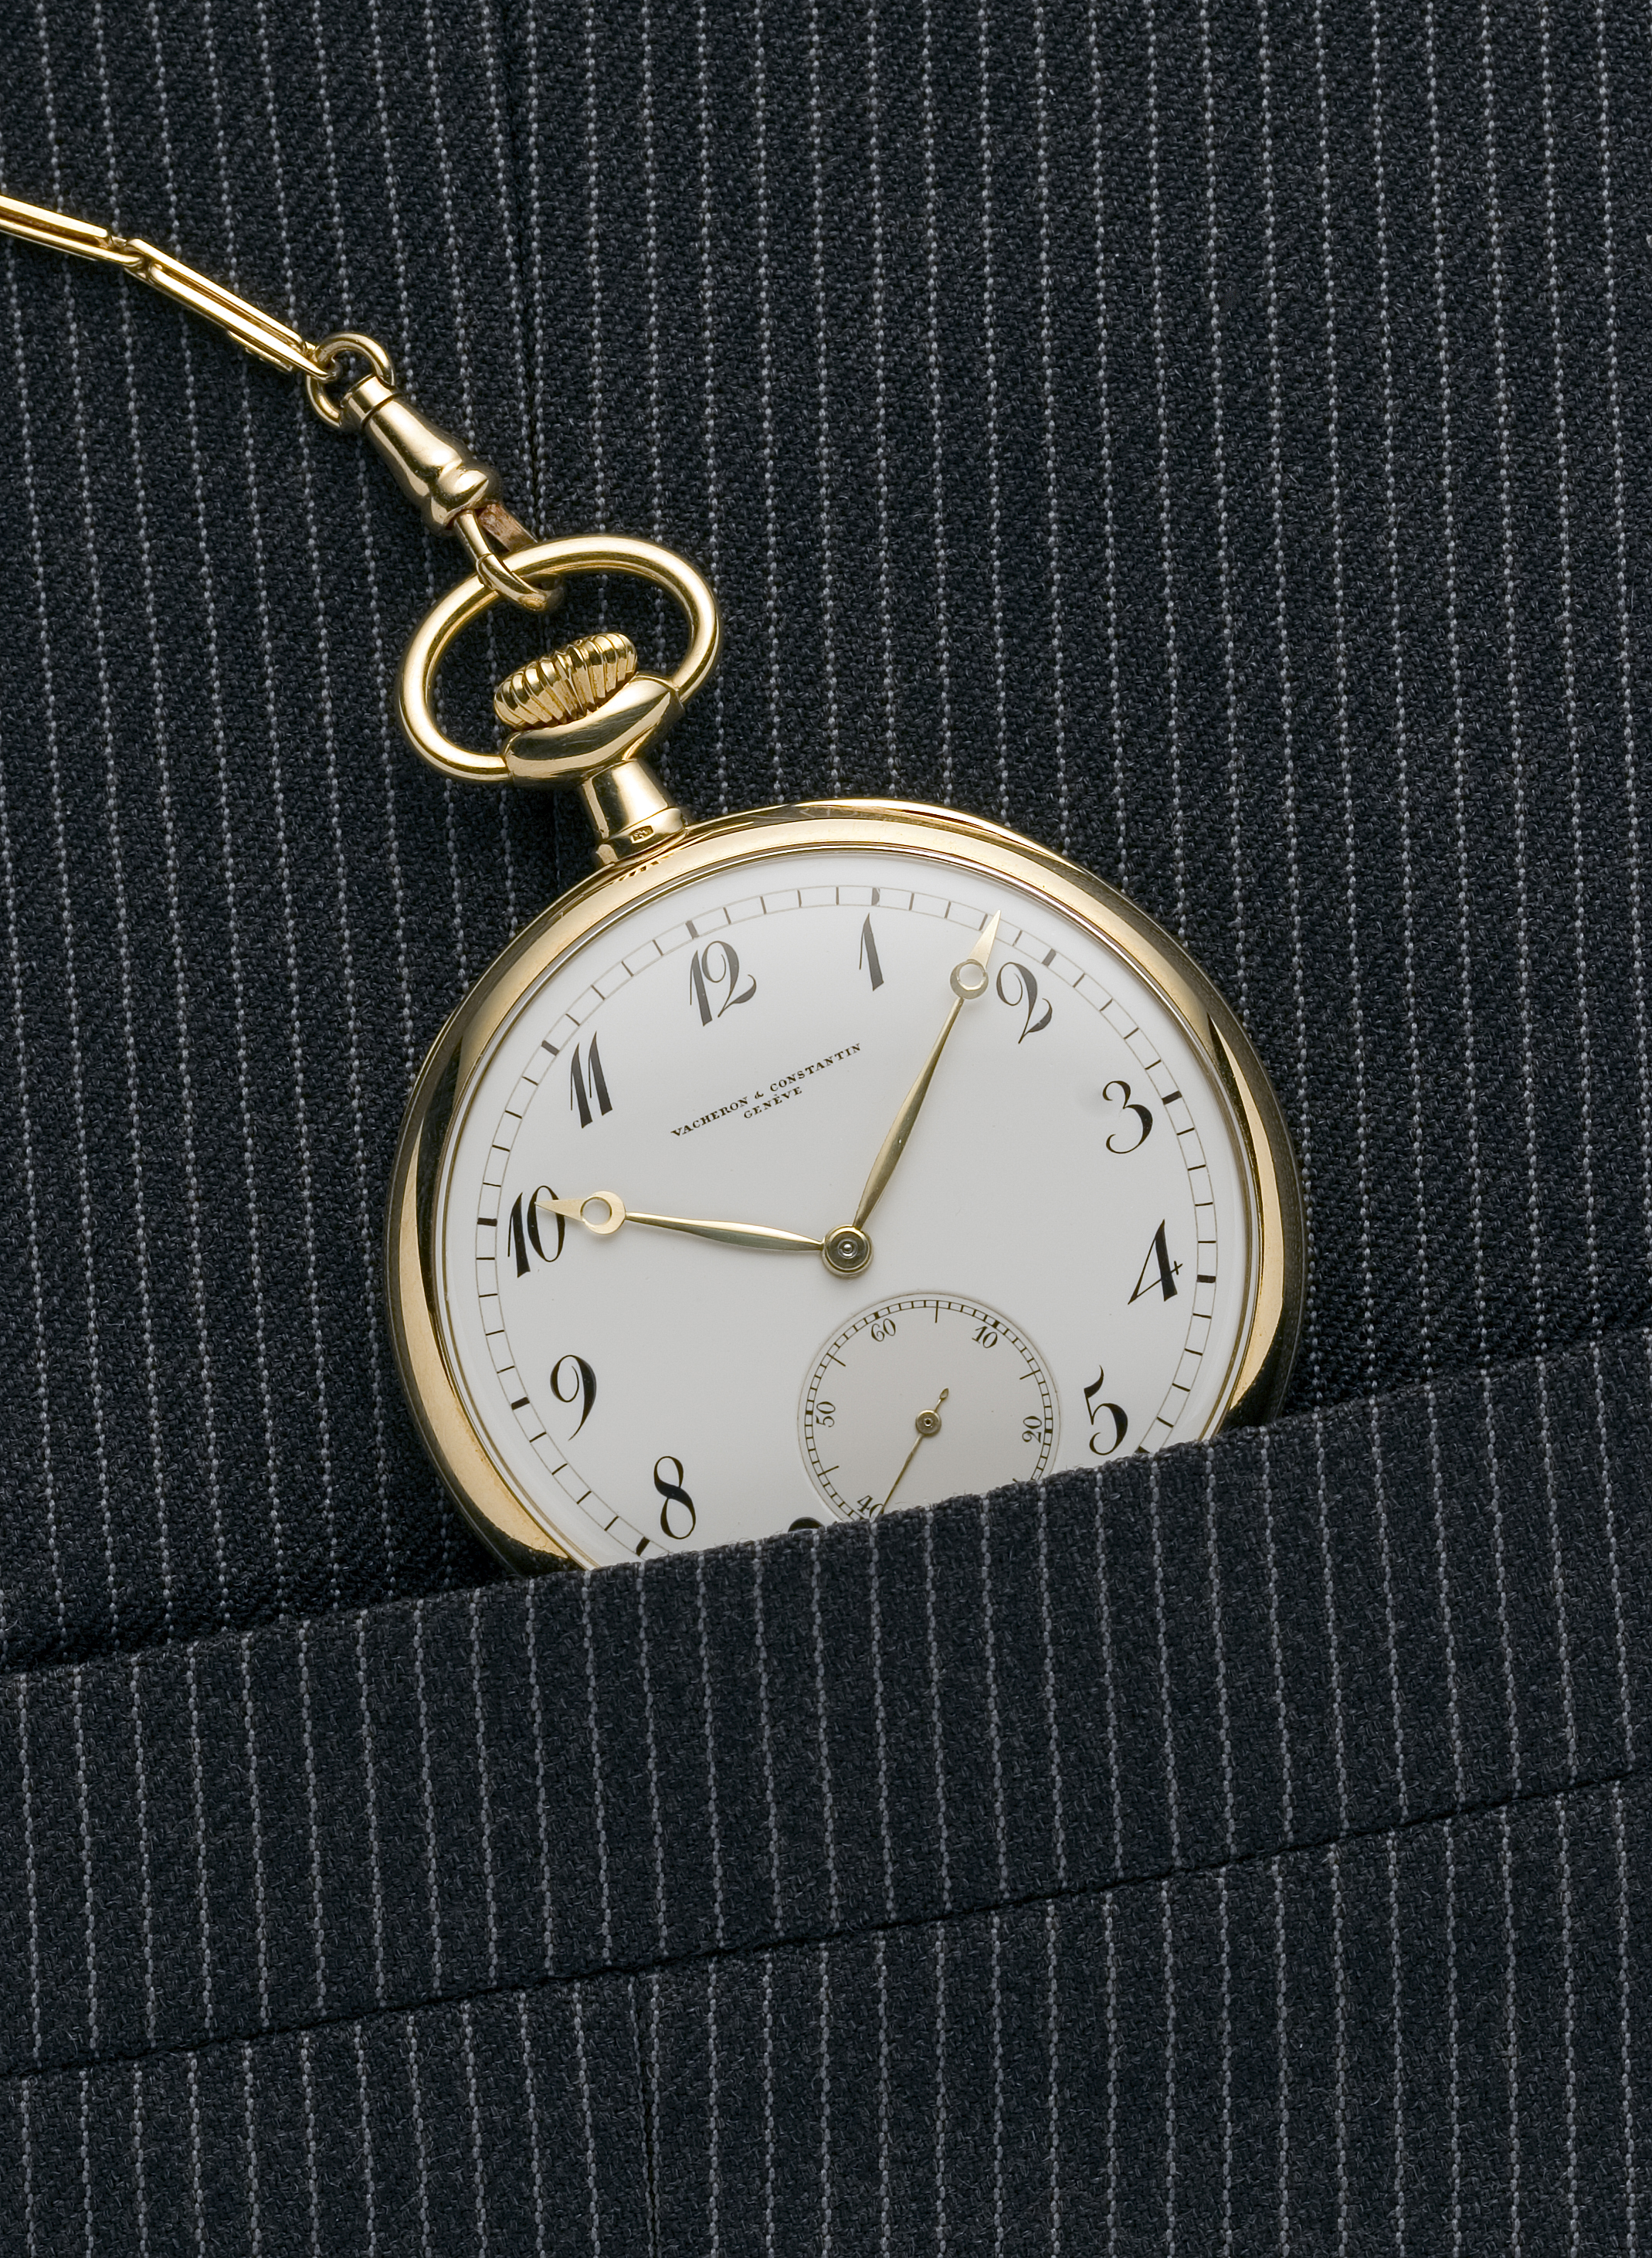 Pocket that watch.jpg - Pocket that watch